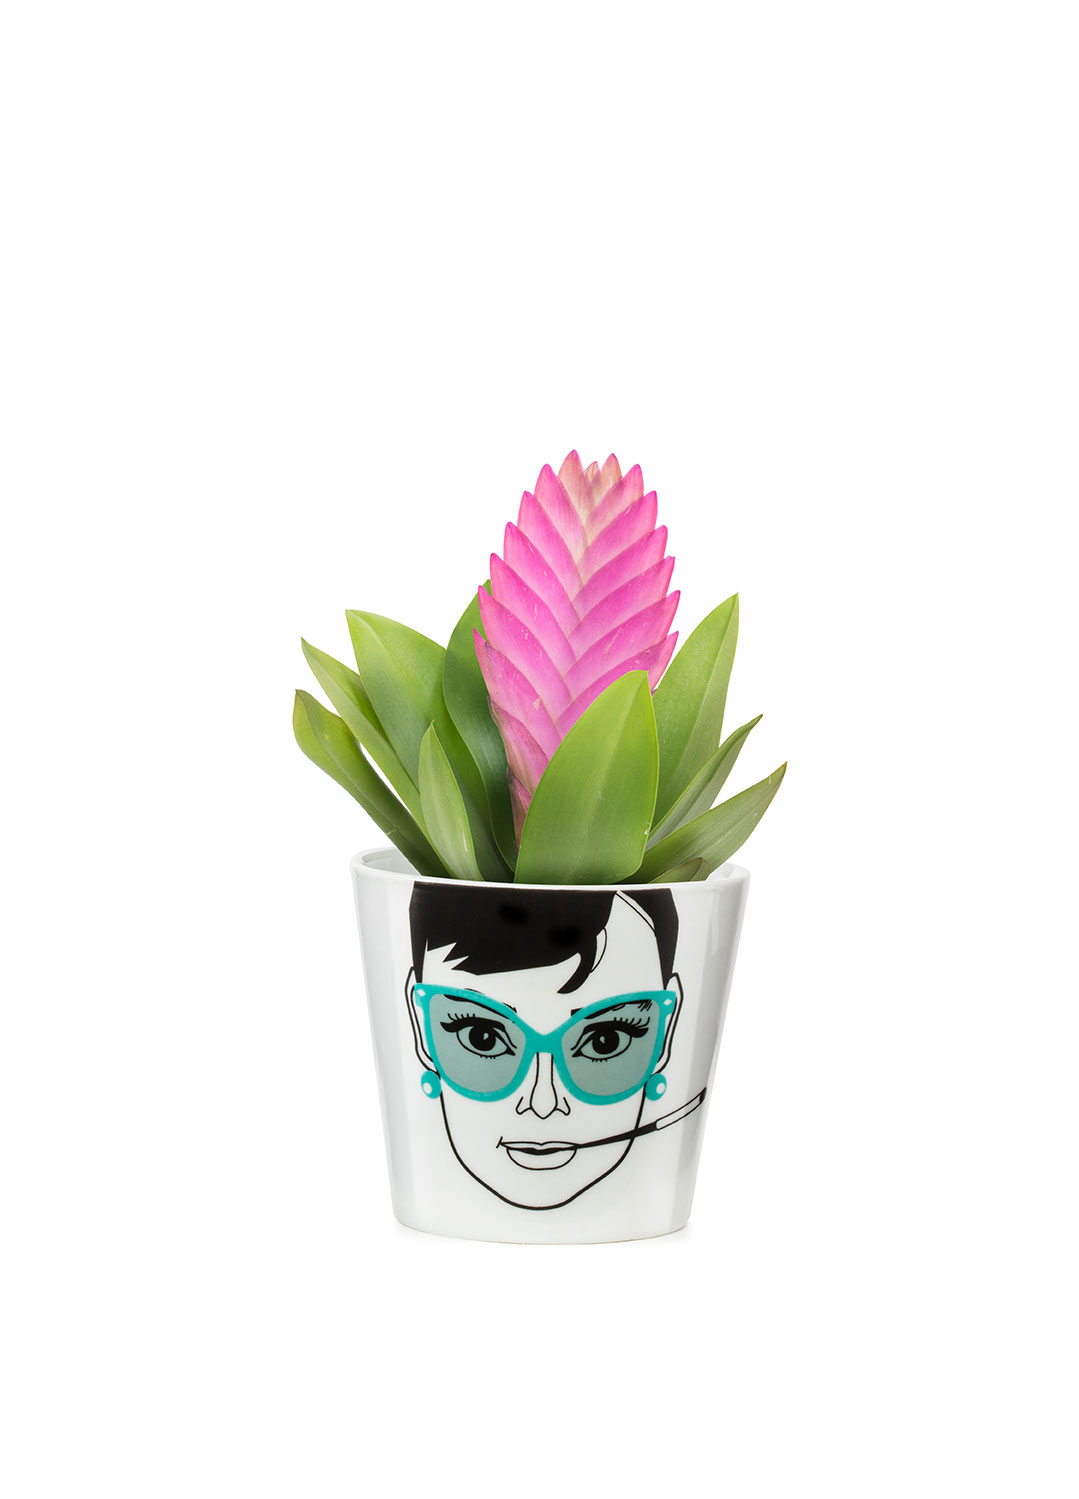 [10%할인+10%추가/DONKEY PRODUCTS] Flower Pot Small - Elegant Audrey